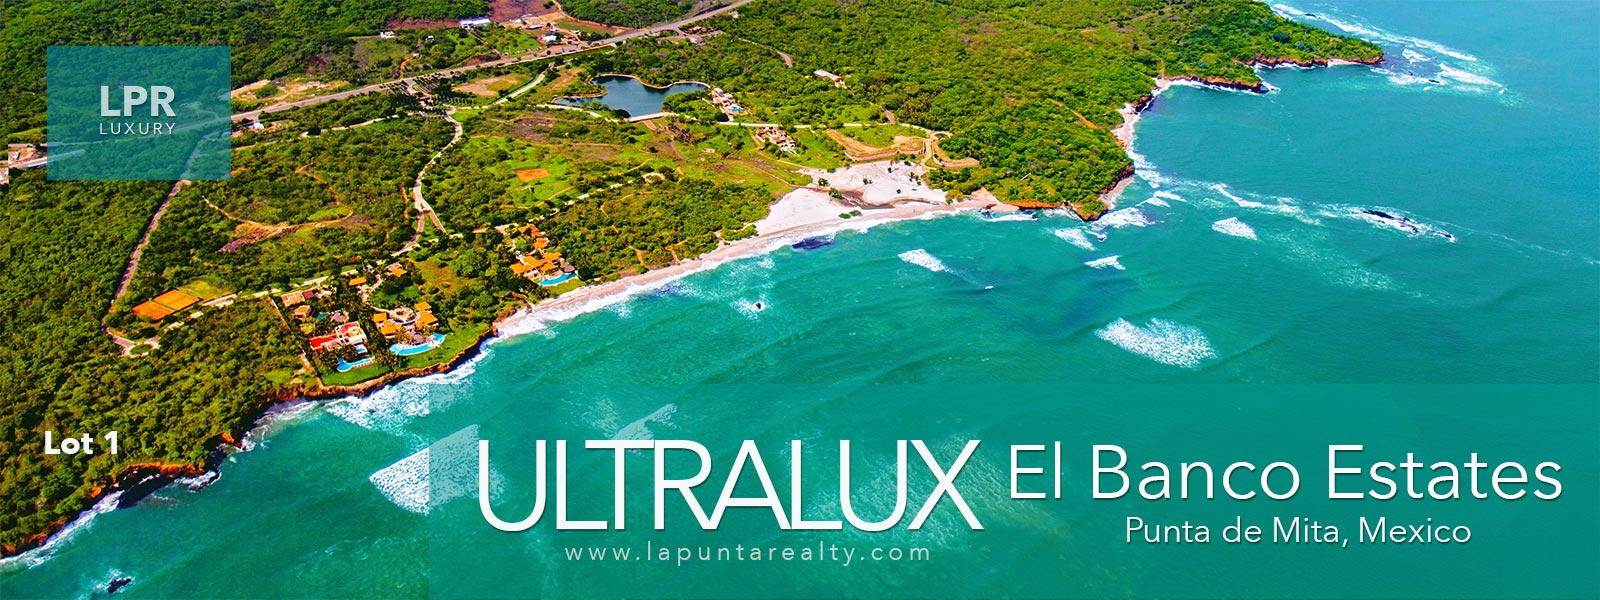 El Banco Estates - Ultra Luxury Punta de Mita Real Estate, Punta Mita Mexico